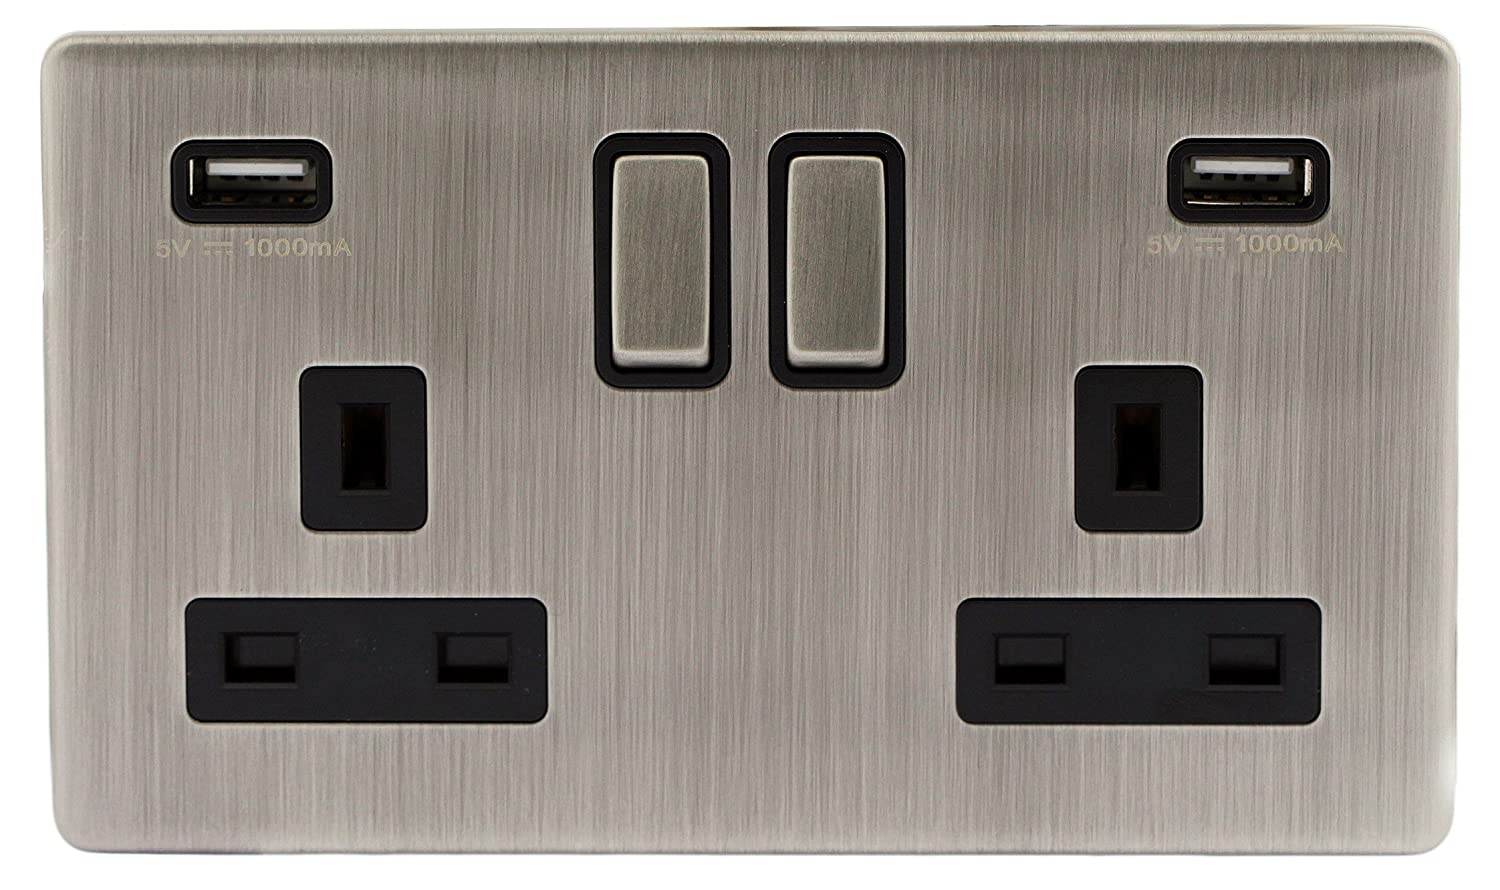 Gloss Brush Chrome Usb Double Wall Plug Socket 2 Gang 13a With Brushed Satin Light Pull Cord Switch Amazoncouk Lighting Charger Port Outlets Plate N410dme Kitchen Home